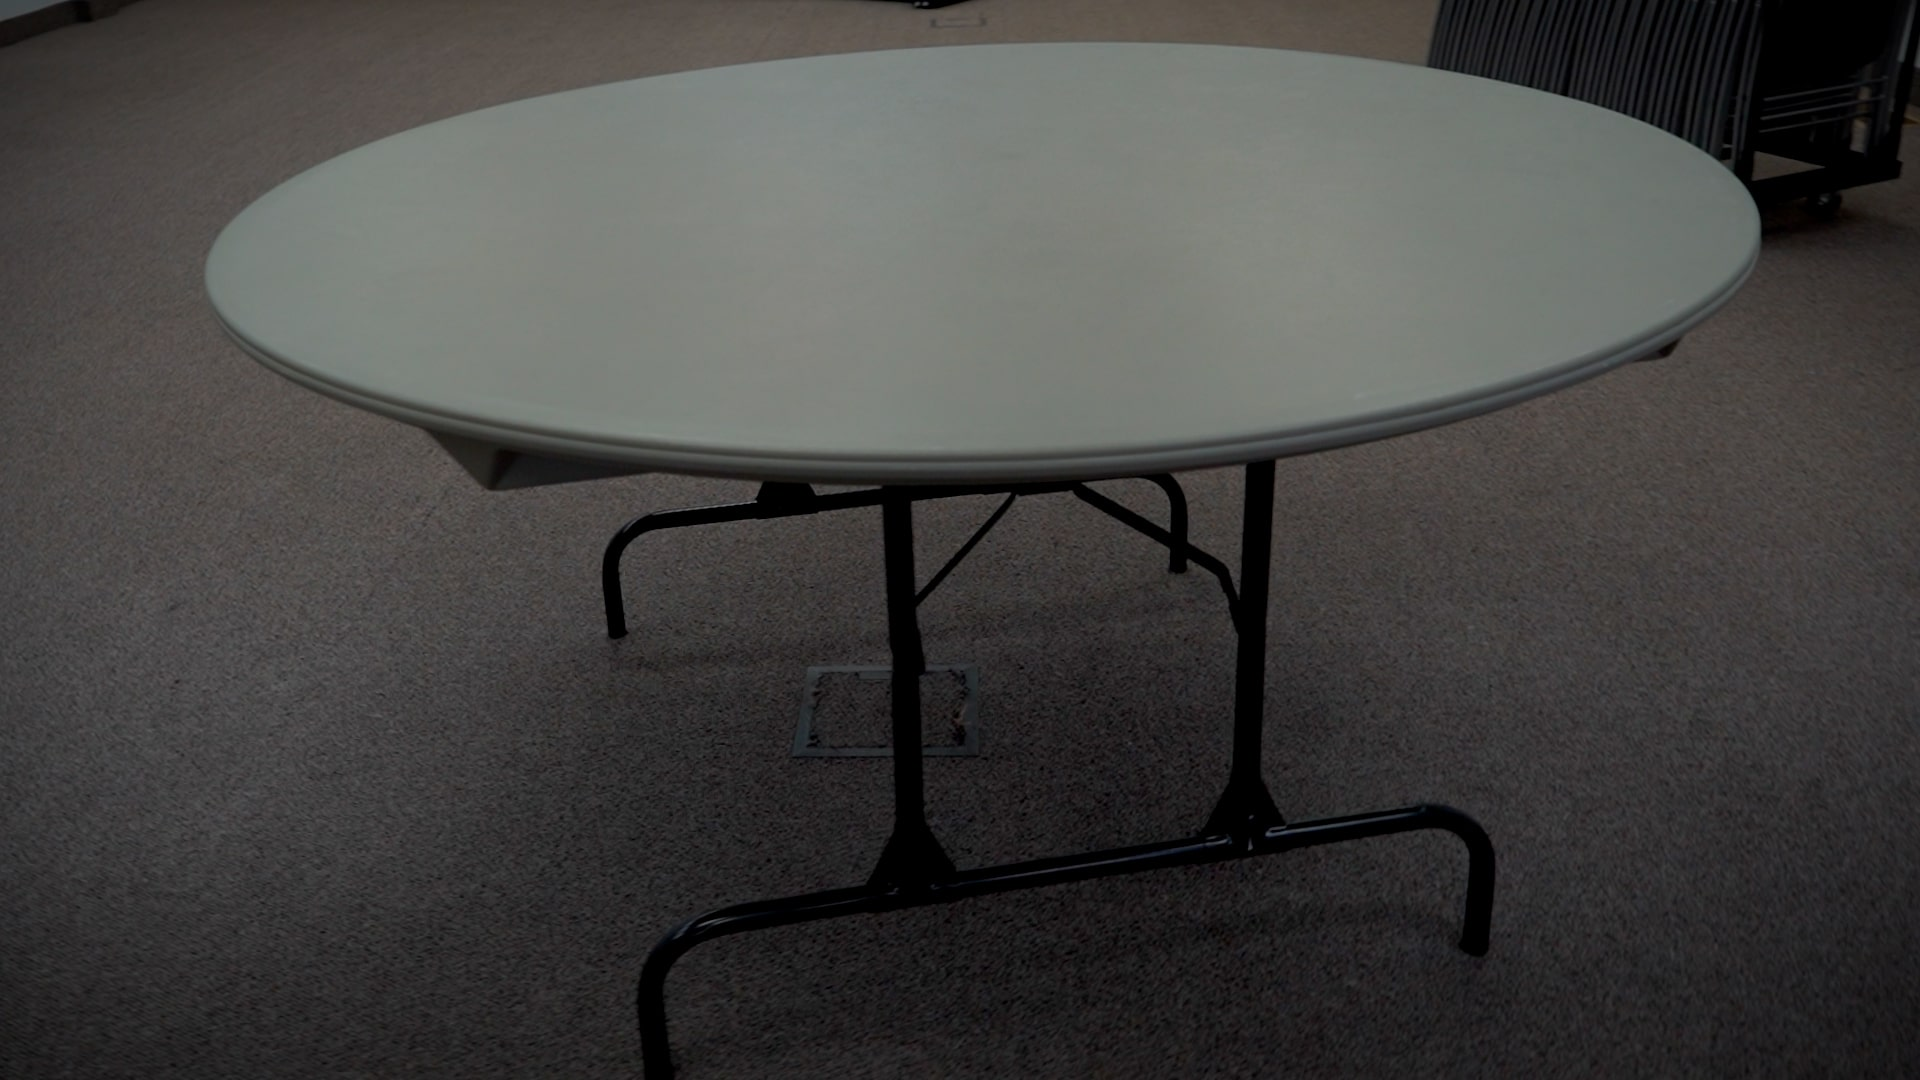 The Party Venue's Round Table